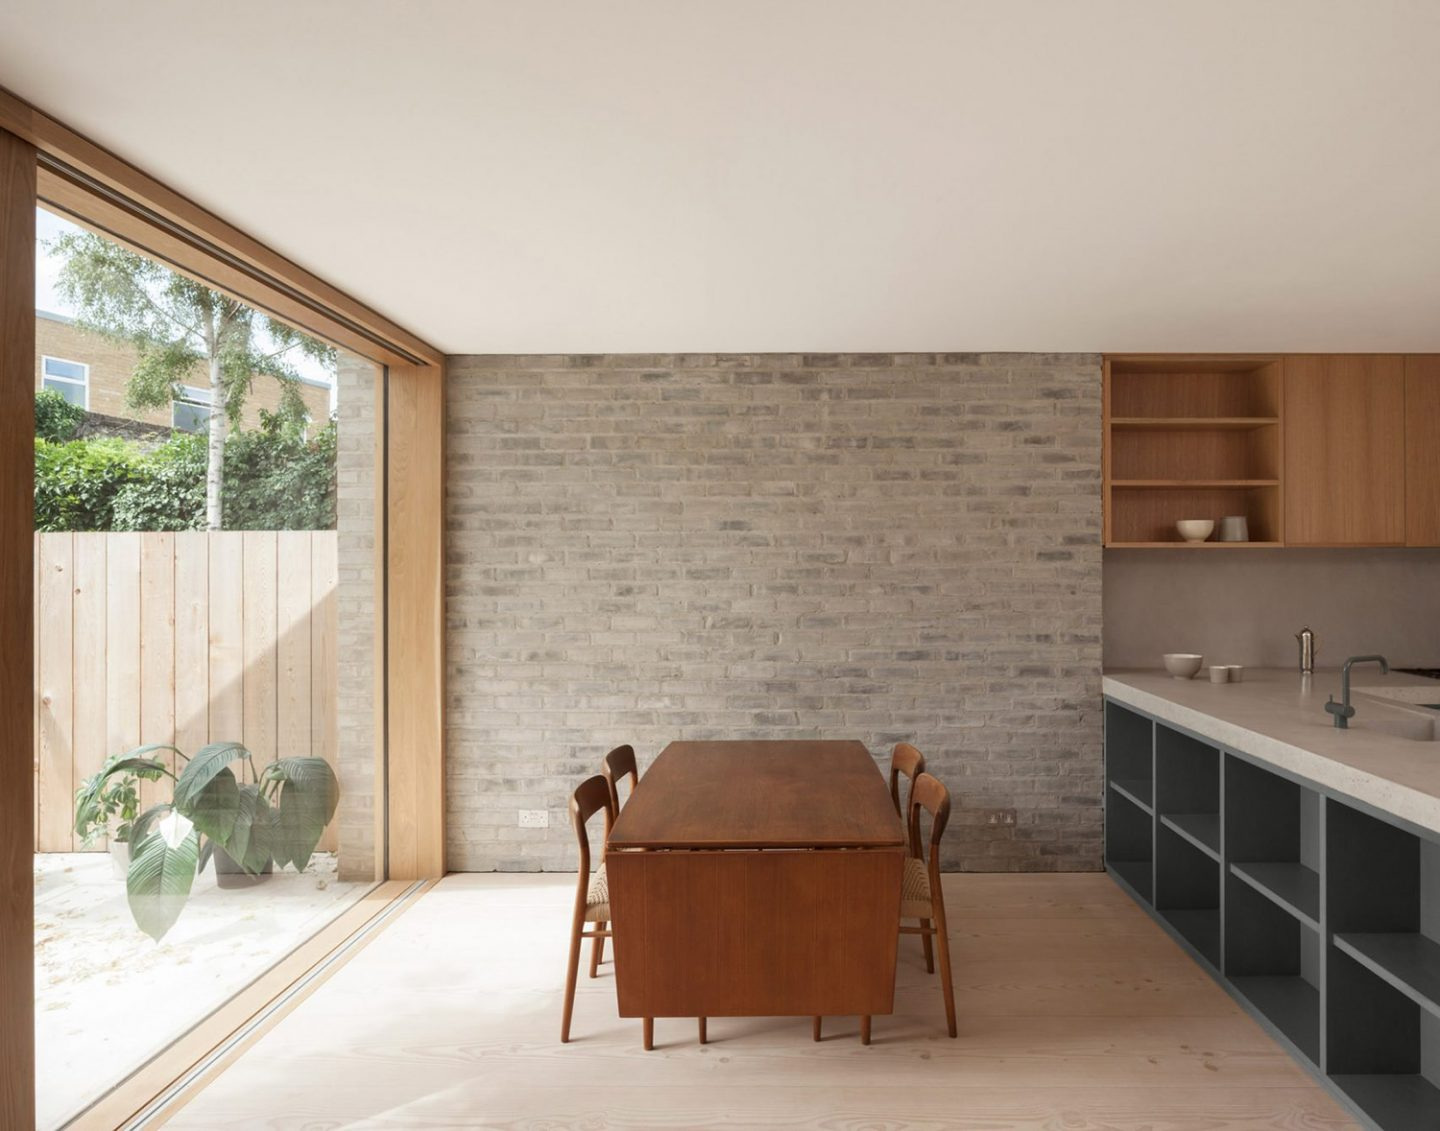 iGNANT_Architecture_AlJawad_Pike_London_Stoke_Newington_Renovation_3